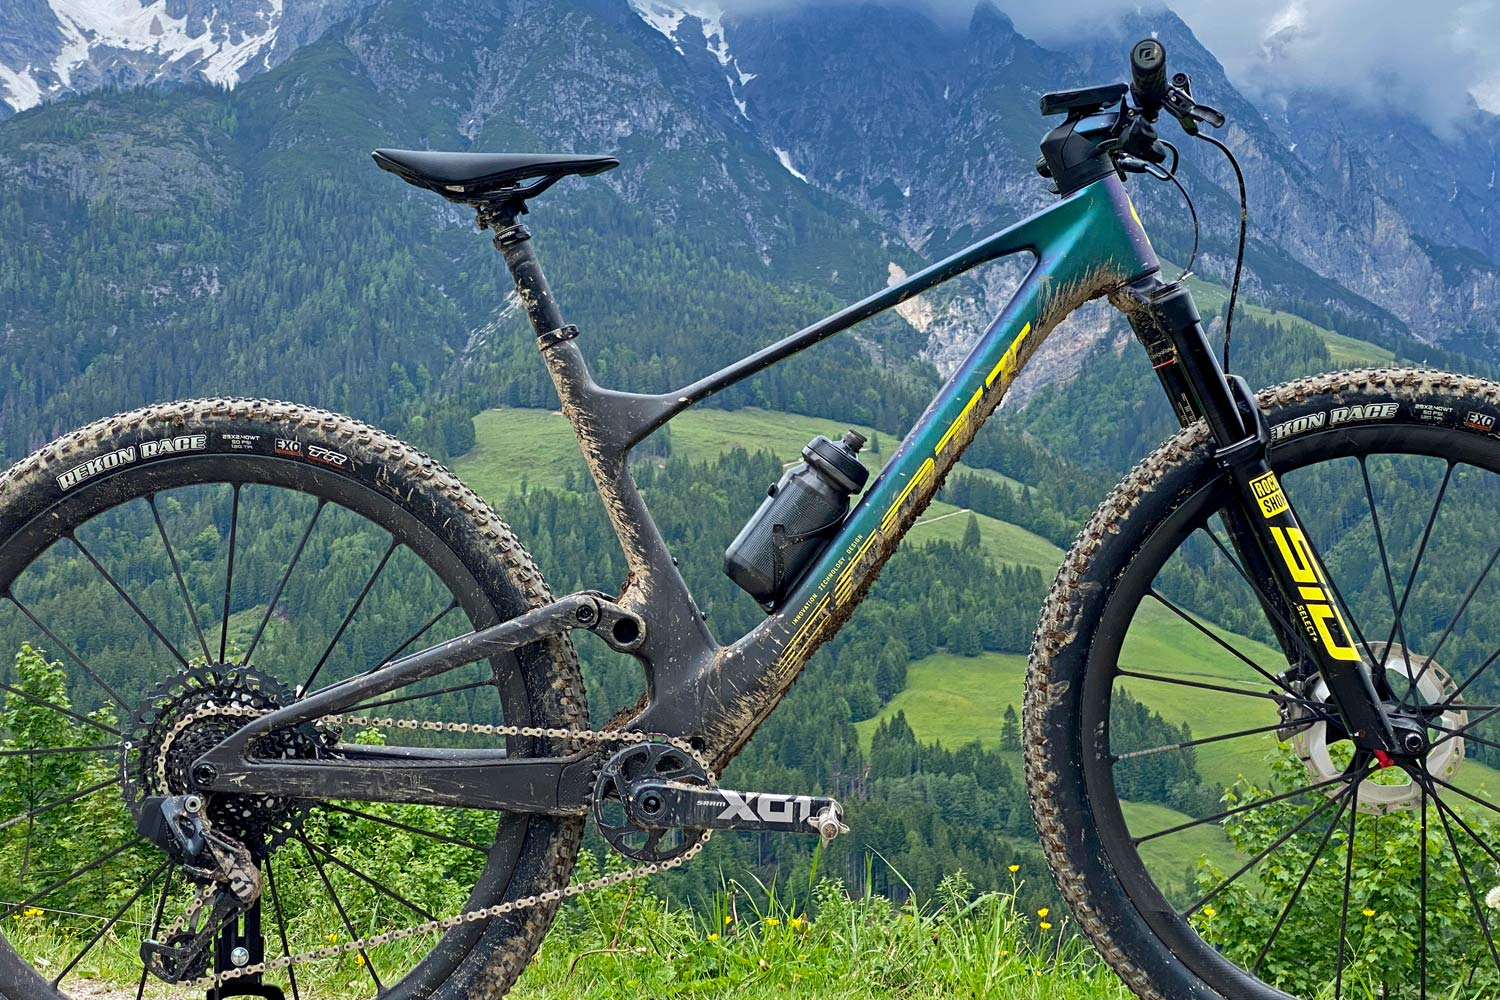 2022 Scott Spark RC & 900 XC trail mountain bikes, light fully-integrated cross-country MTB,frame